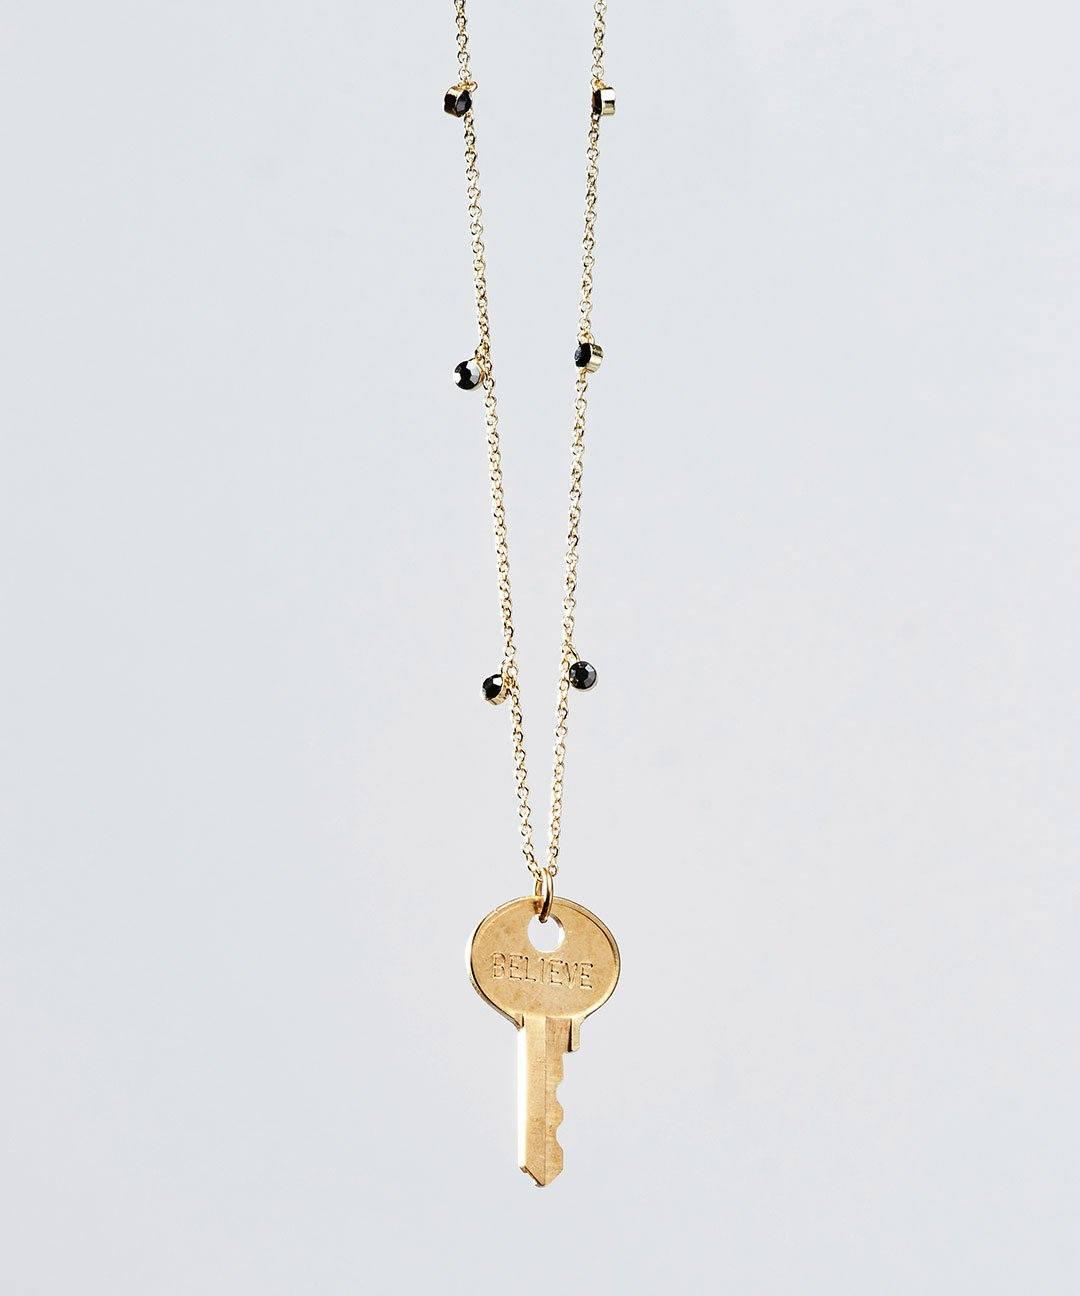 Pyrite Droplet Beaded Dainty Key Necklace Necklaces The Giving Keys BELIEVE PYRITE